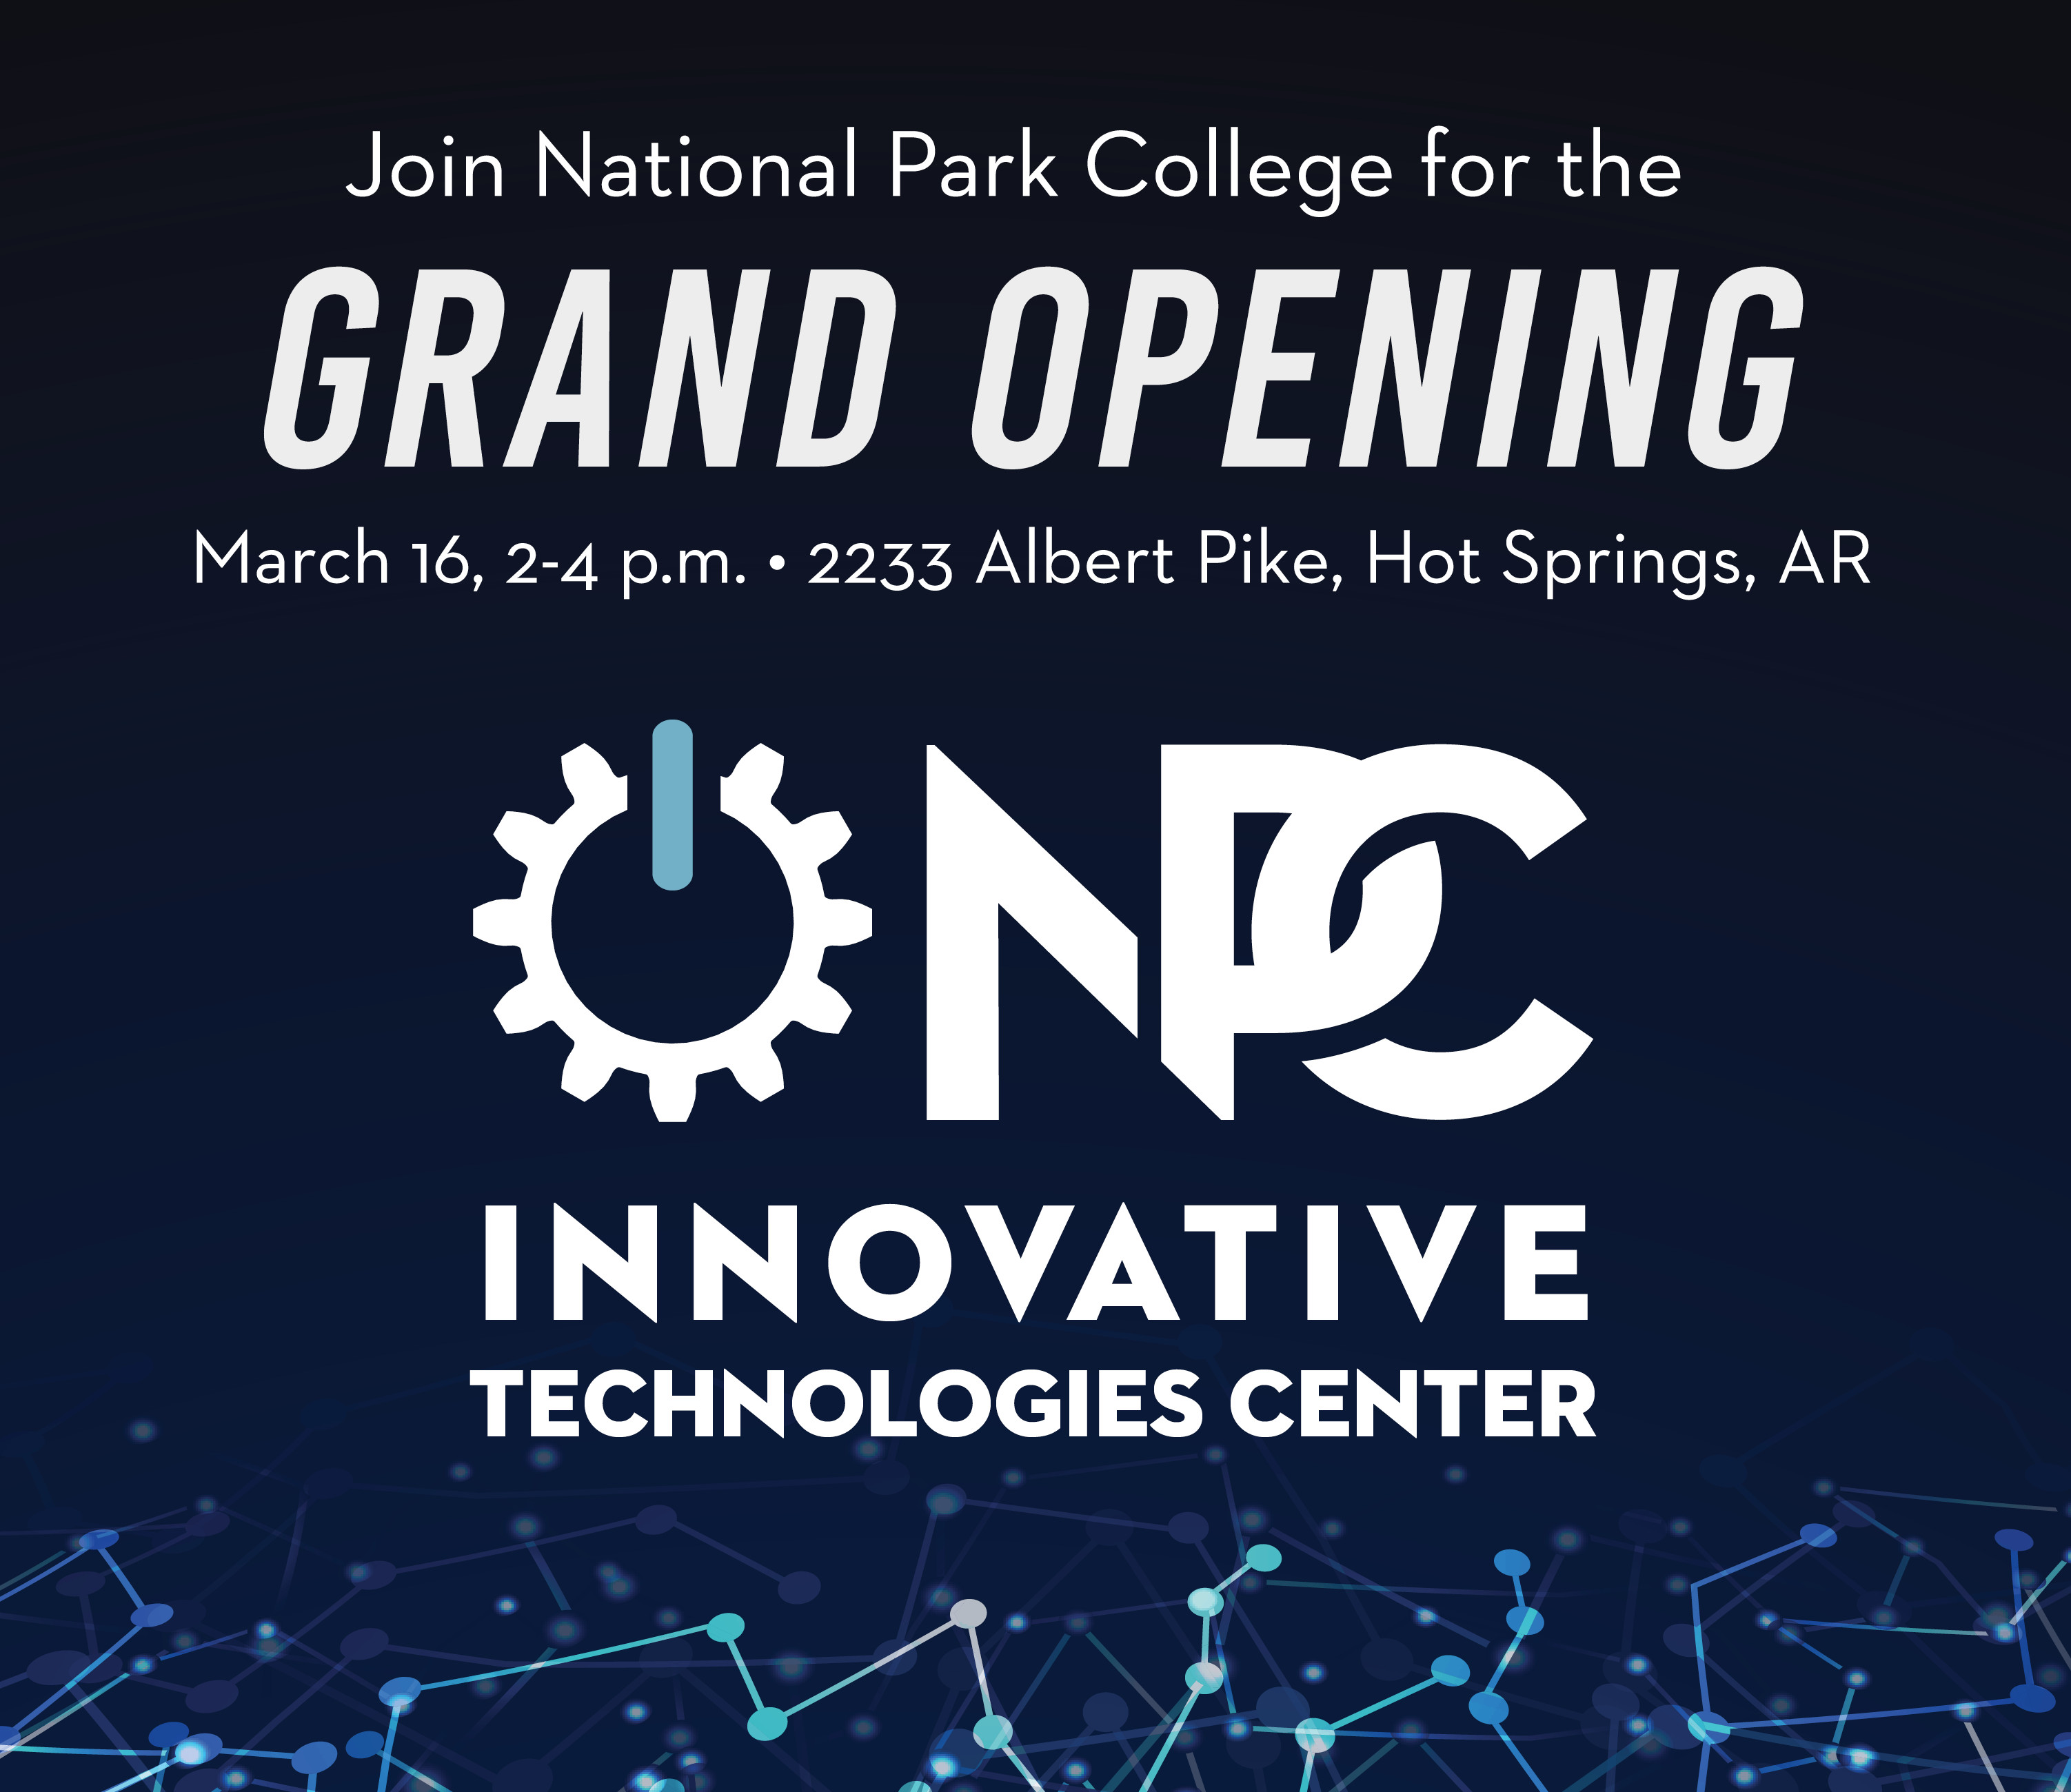 Grand Opening - March 16